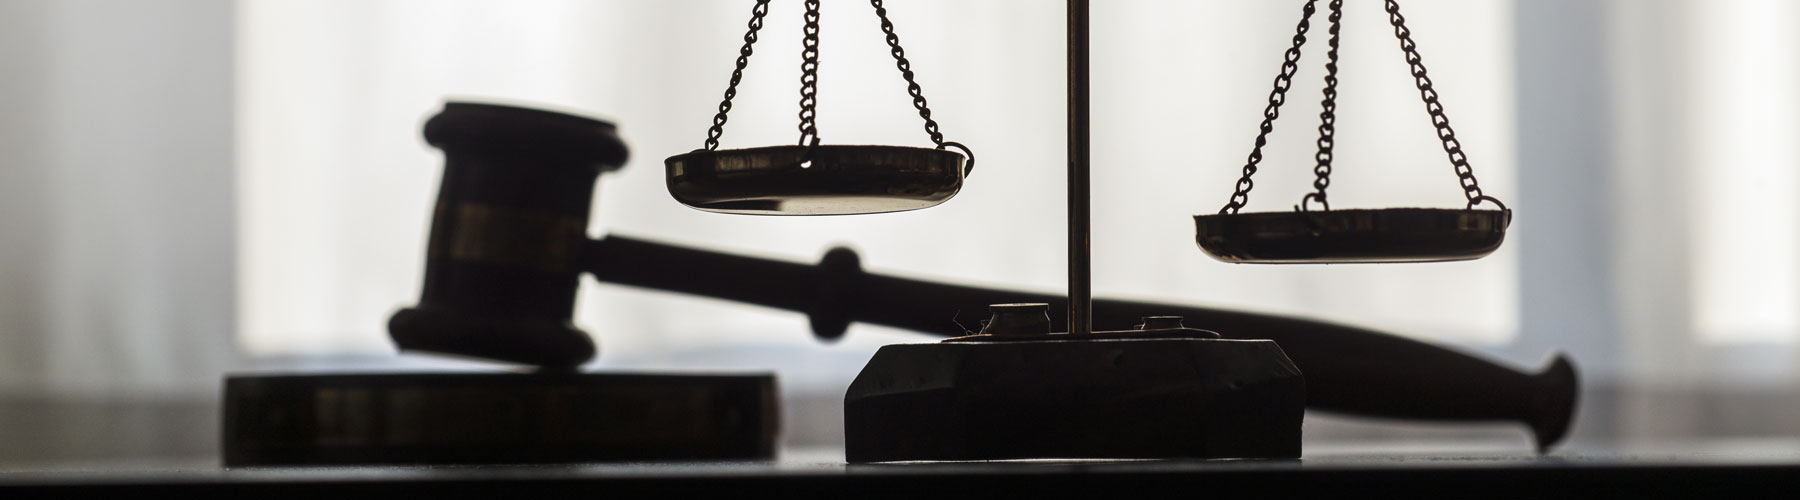 silhouette of gavel and scales